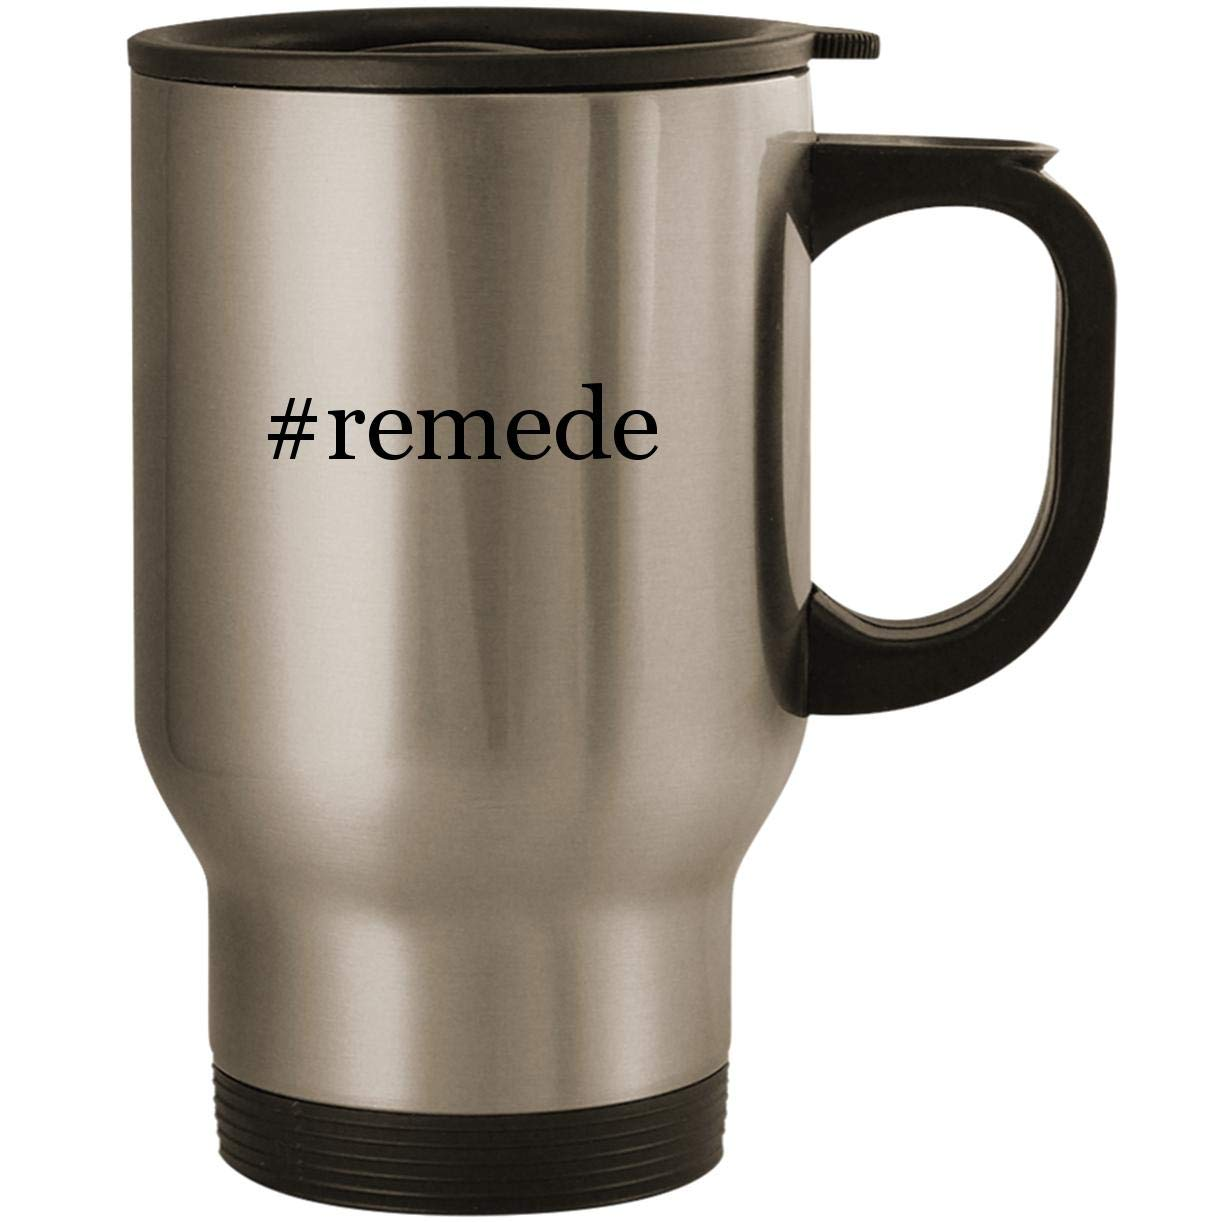 #remede - Stainless Steel 14oz Road Ready Travel Mug, Silver